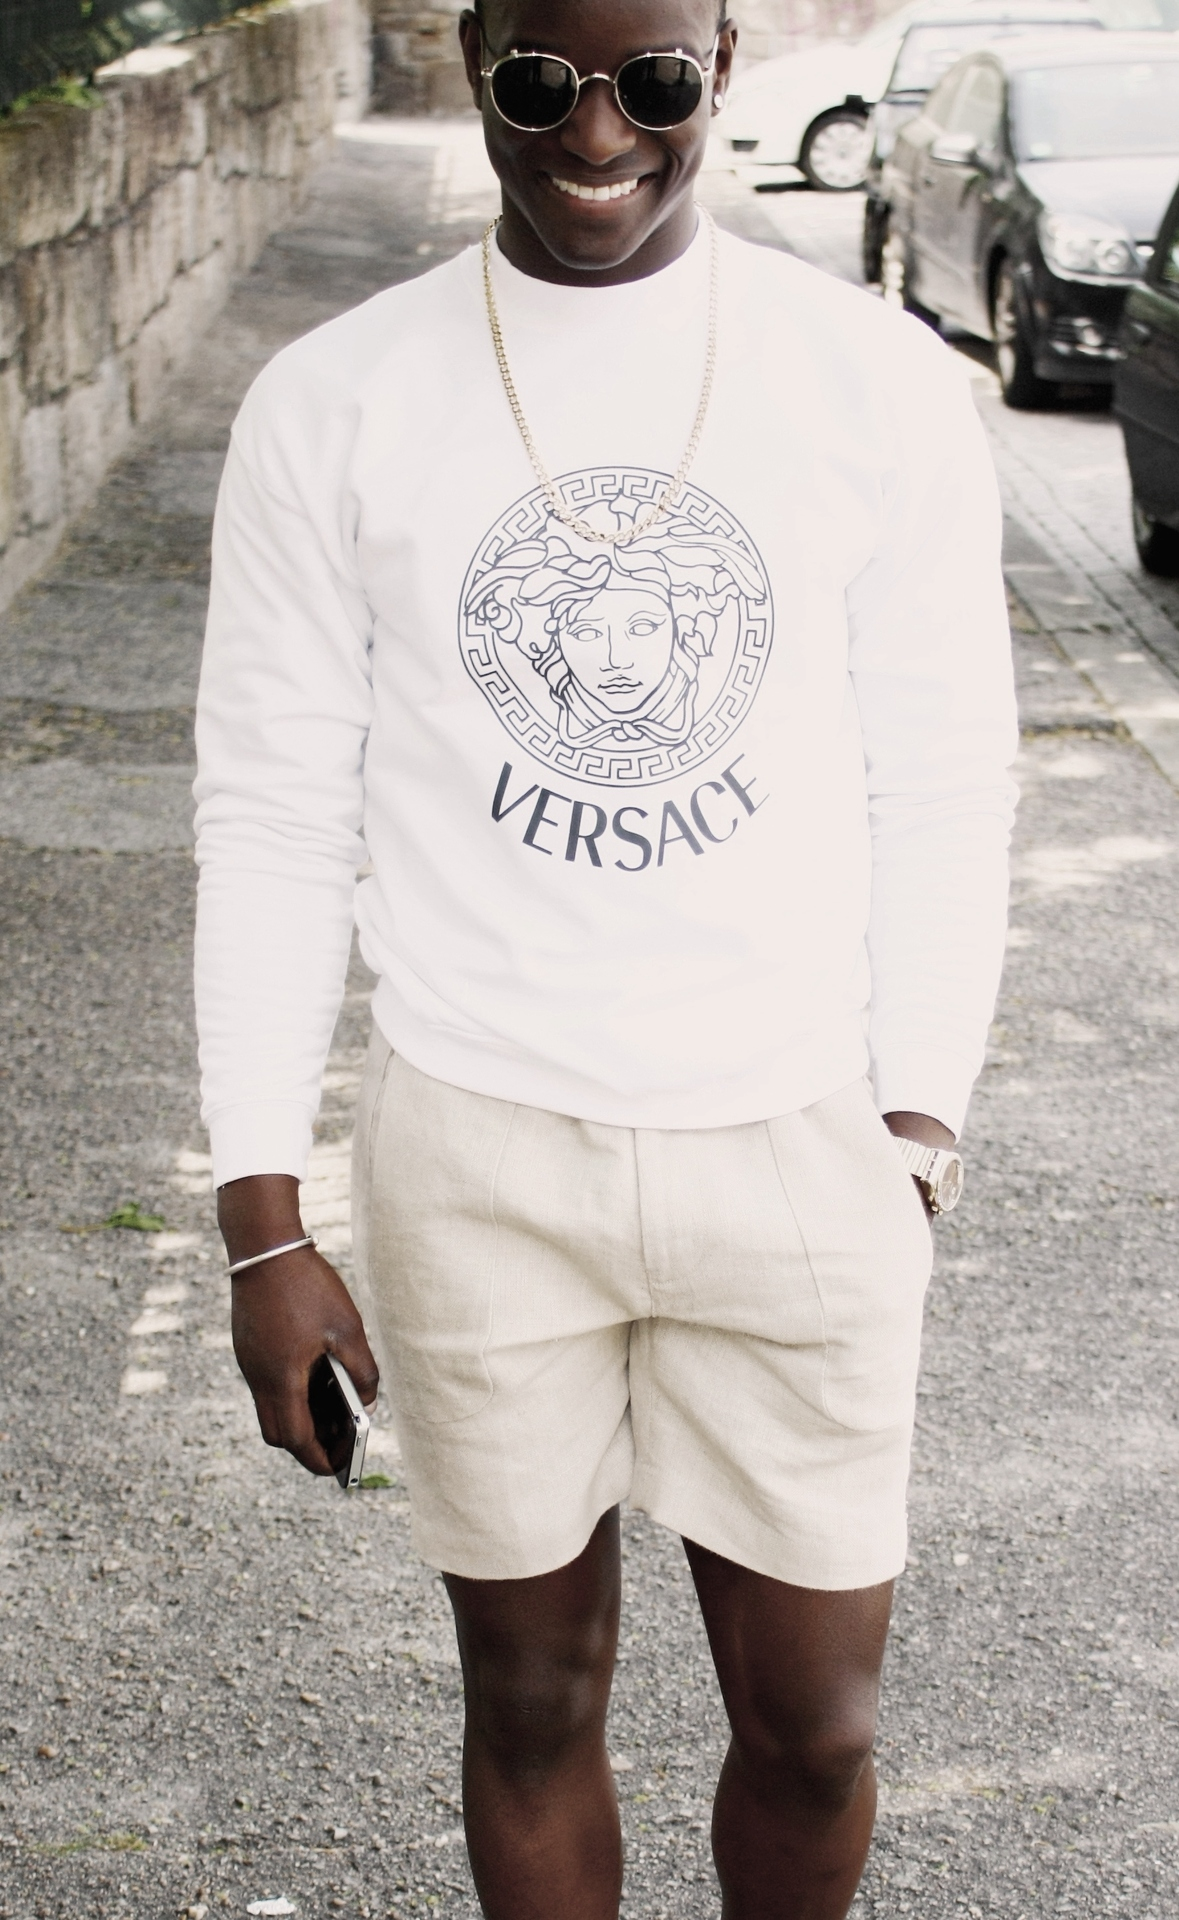 While we're talking about all white, I love the unlikely combinations of the Versace sweatshirt with the bling. I'll take what he's wearing! From:  blackfashion.tumblr.com